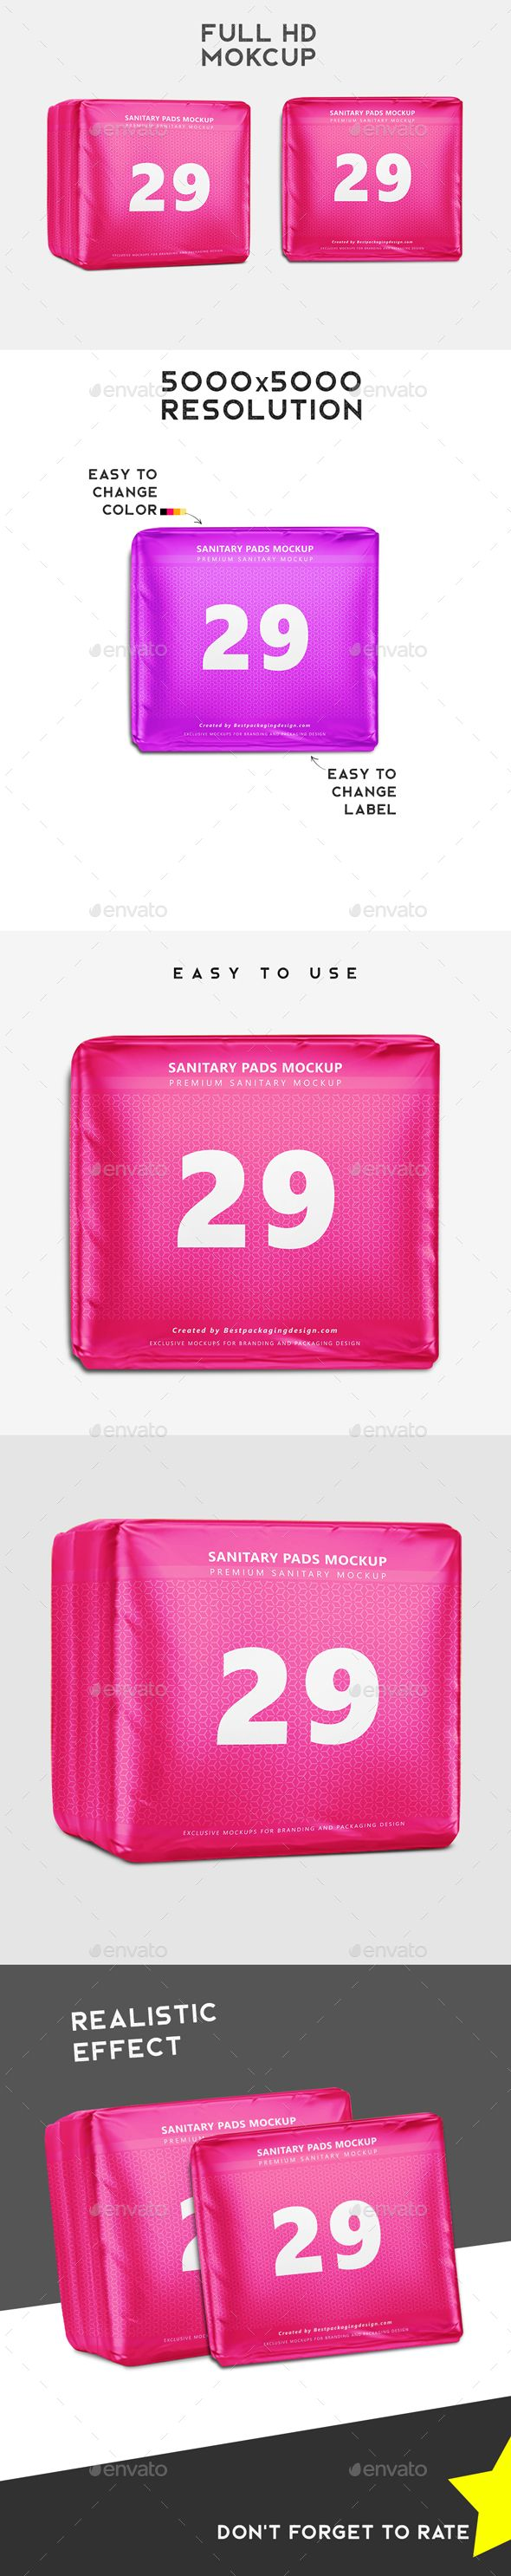 Sanitary Pads Packaging Mockup A 20showcase Your Work On This Hd Mockup Premium Quality And Incredibly Simple To U Sanitary Pads Packaging Mockup Hanger Logo